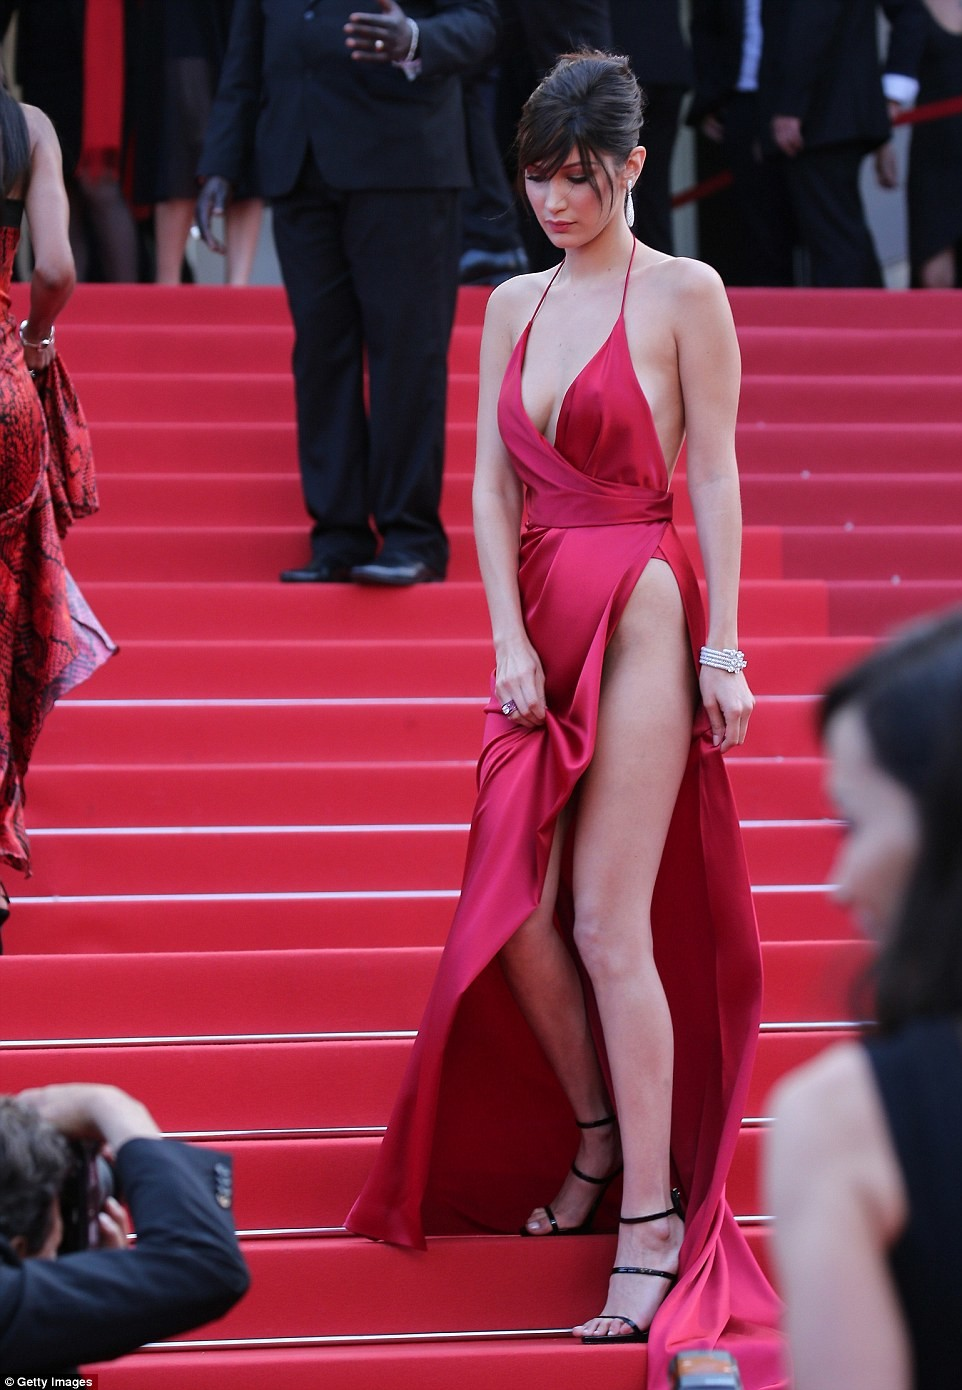 bella hadid red dress cannes 2016 (12)